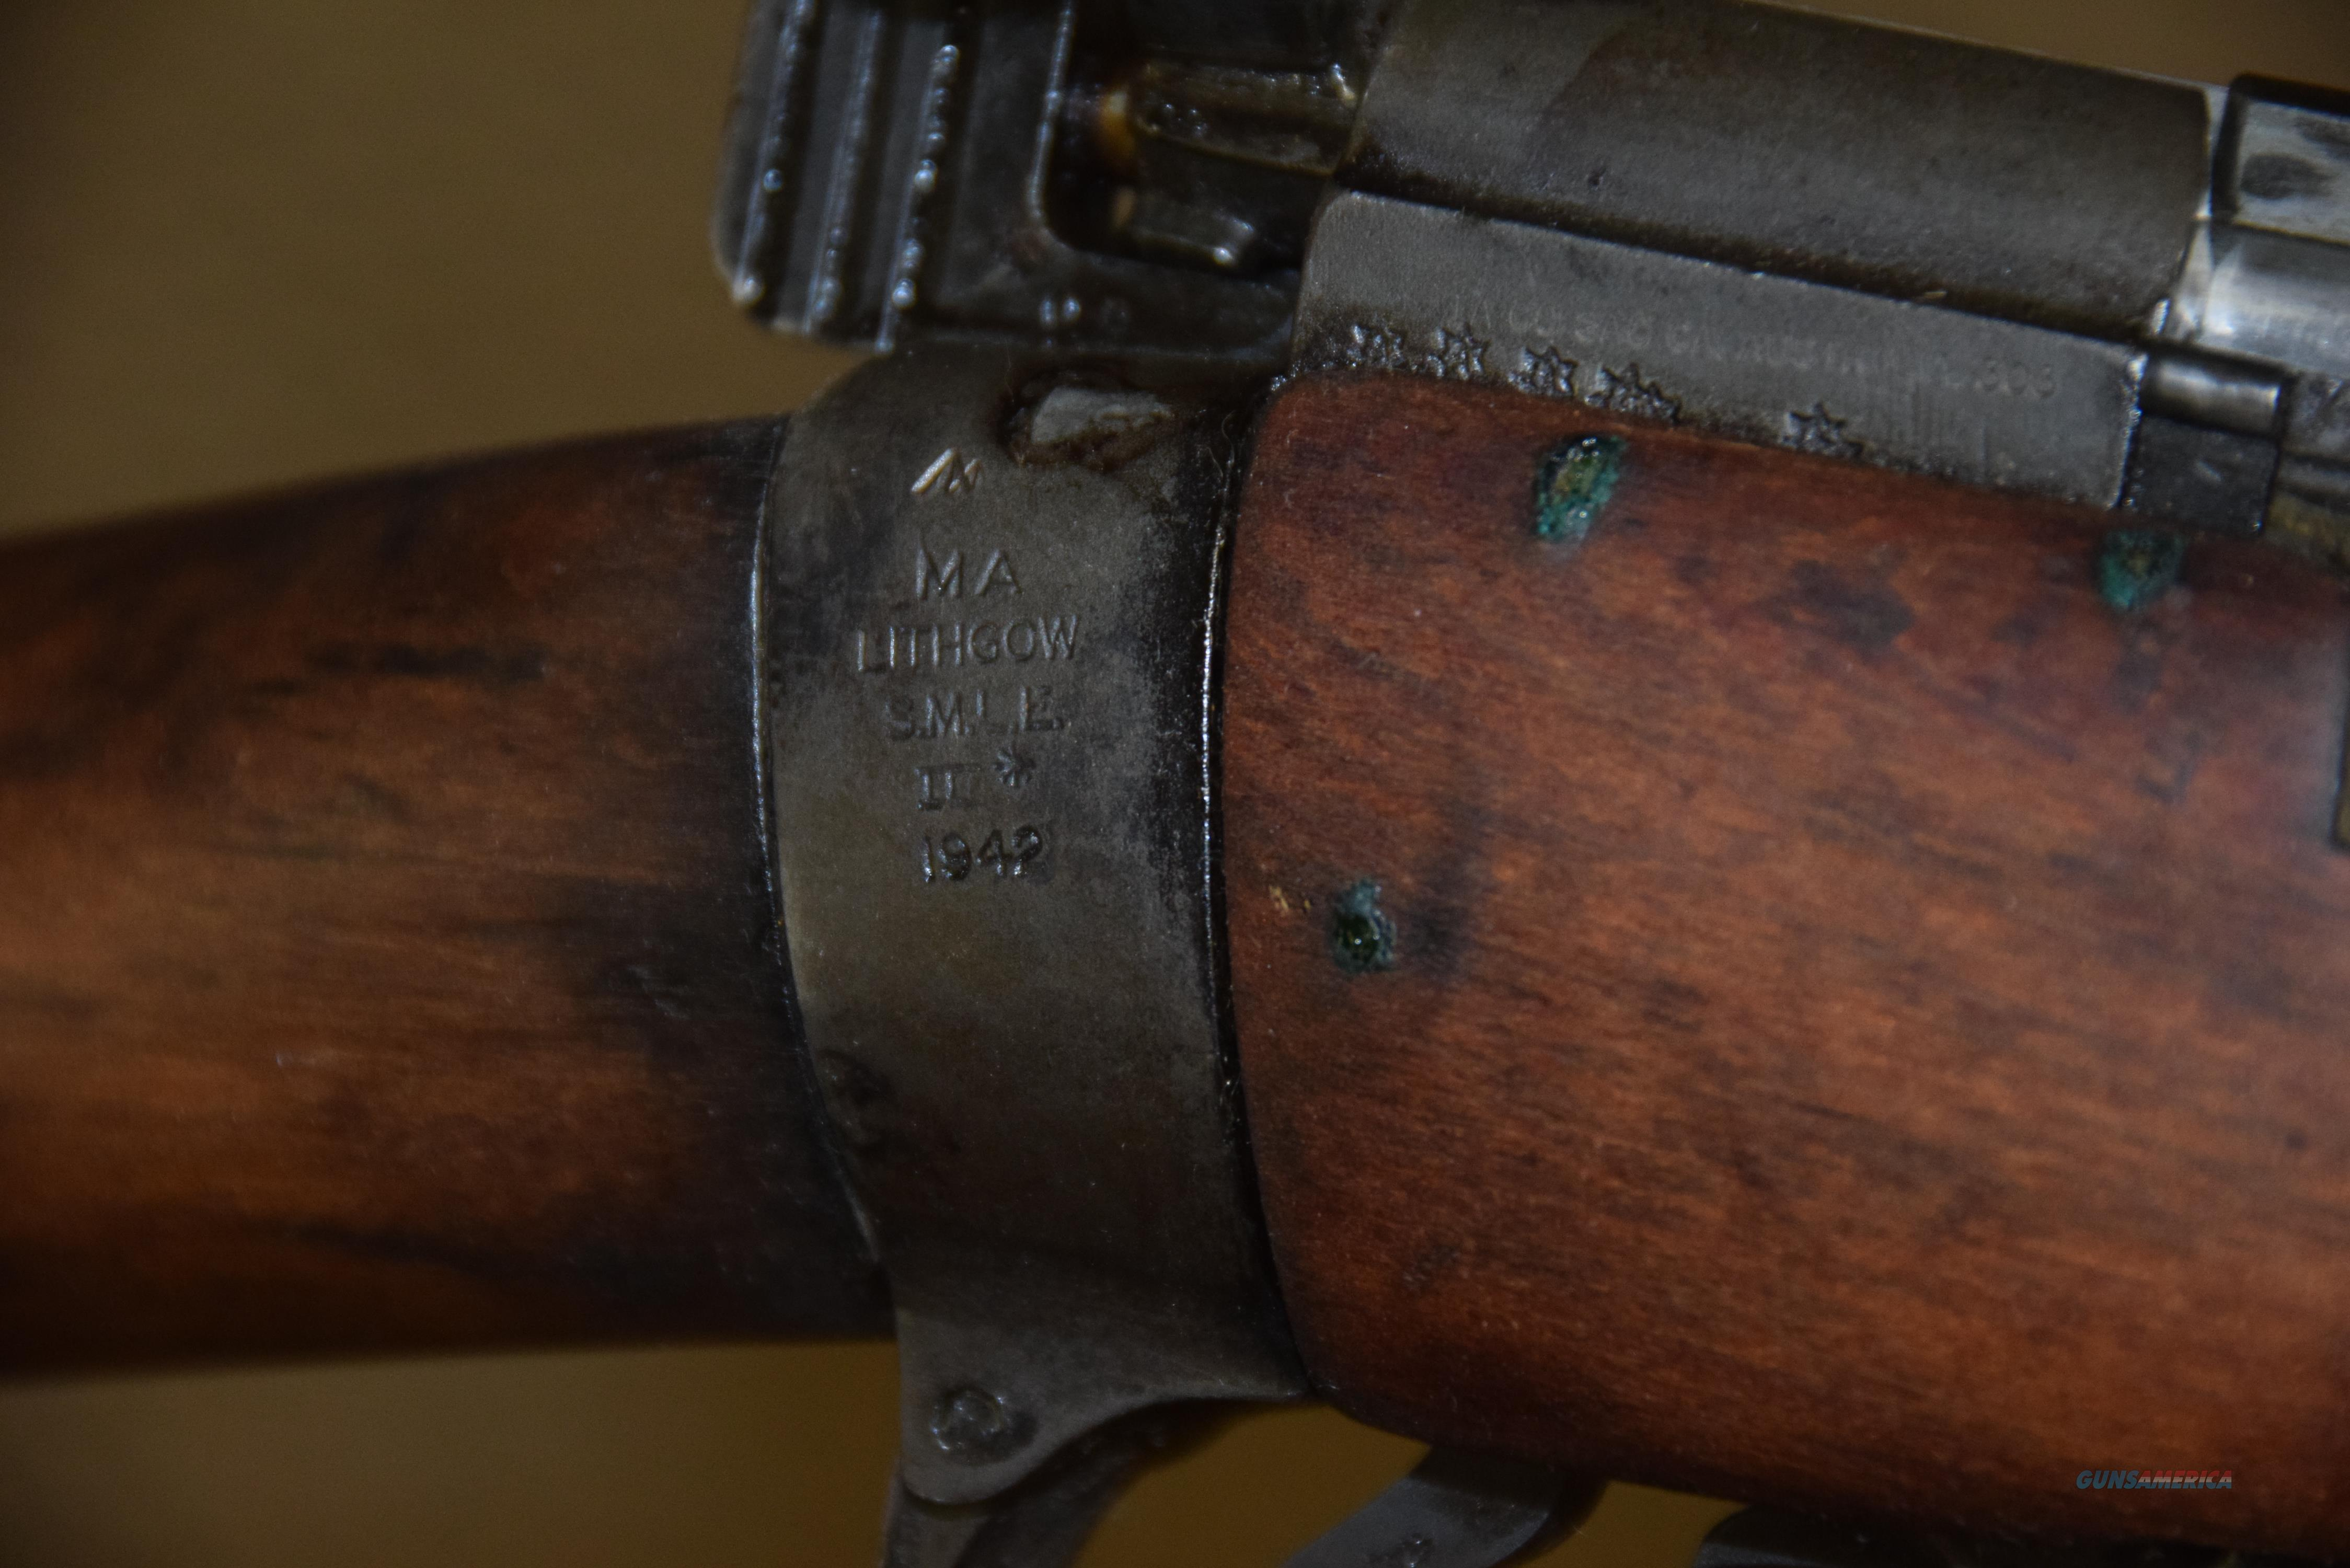 ENFIELD SMLE LITHGOW .303 RIFLE DATED 1942 -- REDUCED!  Guns > Rifles > Enfield Rifle